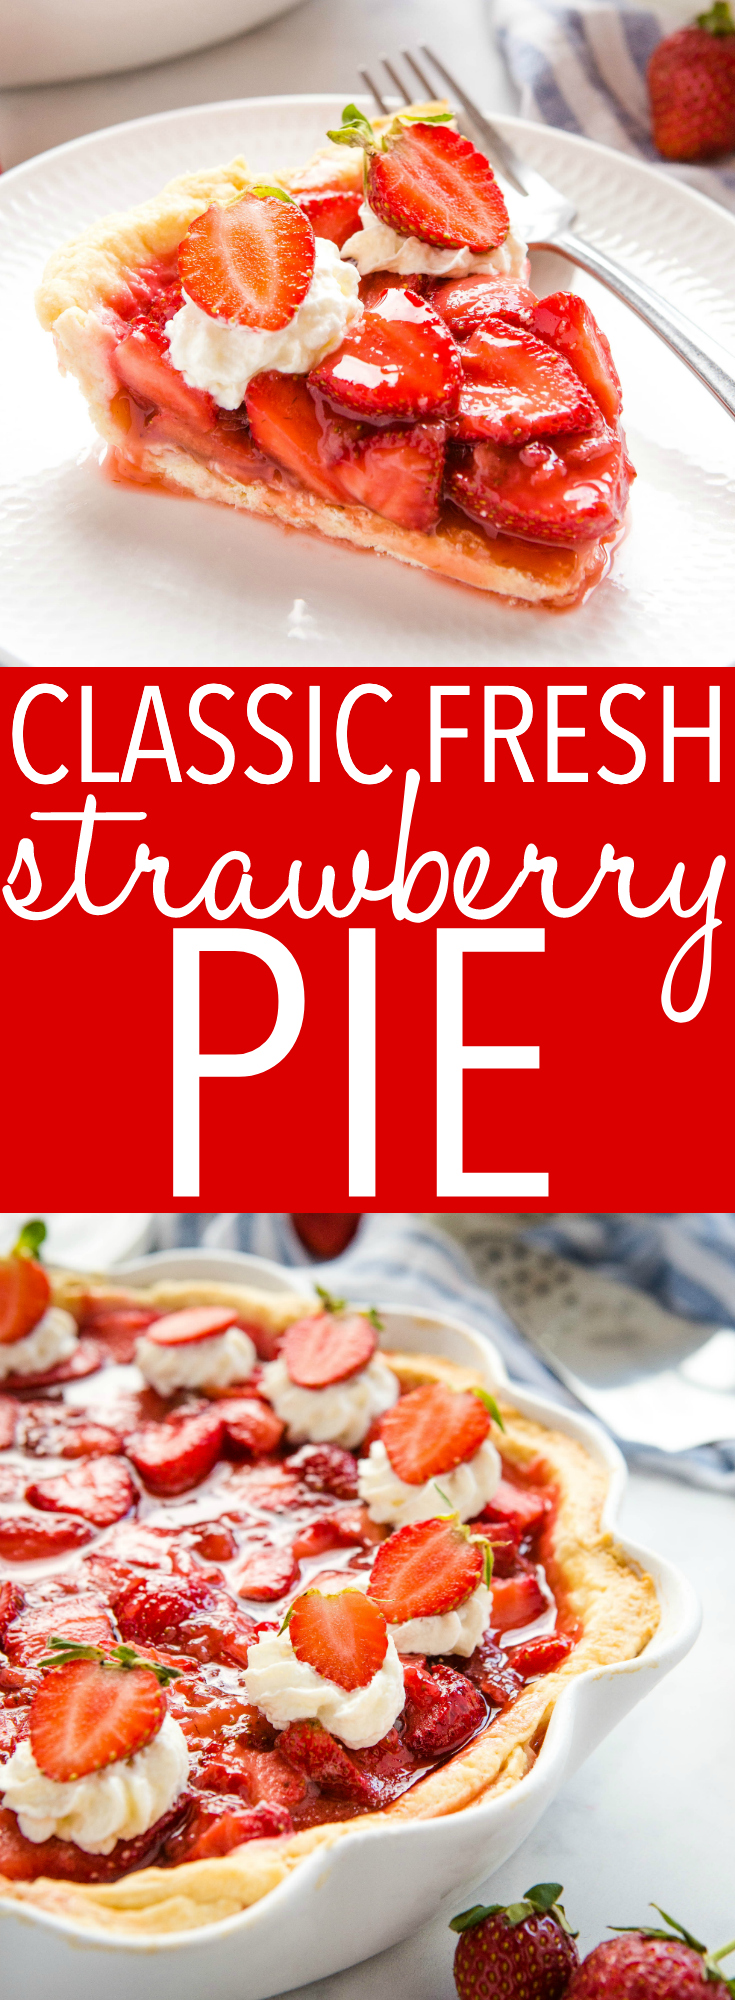 This Classic Fresh Strawberry Pie is an old family recipe for the perfect easy summer dessert! It's packed with fresh strawberries and made with an easy trick for the perfect juicy slice every time! Recipe from thebusybaker.ca! #strawberrypie #strawberry #dessert #pie #homemade #nobake #berries #barbecue #party #family via @busybakerblog